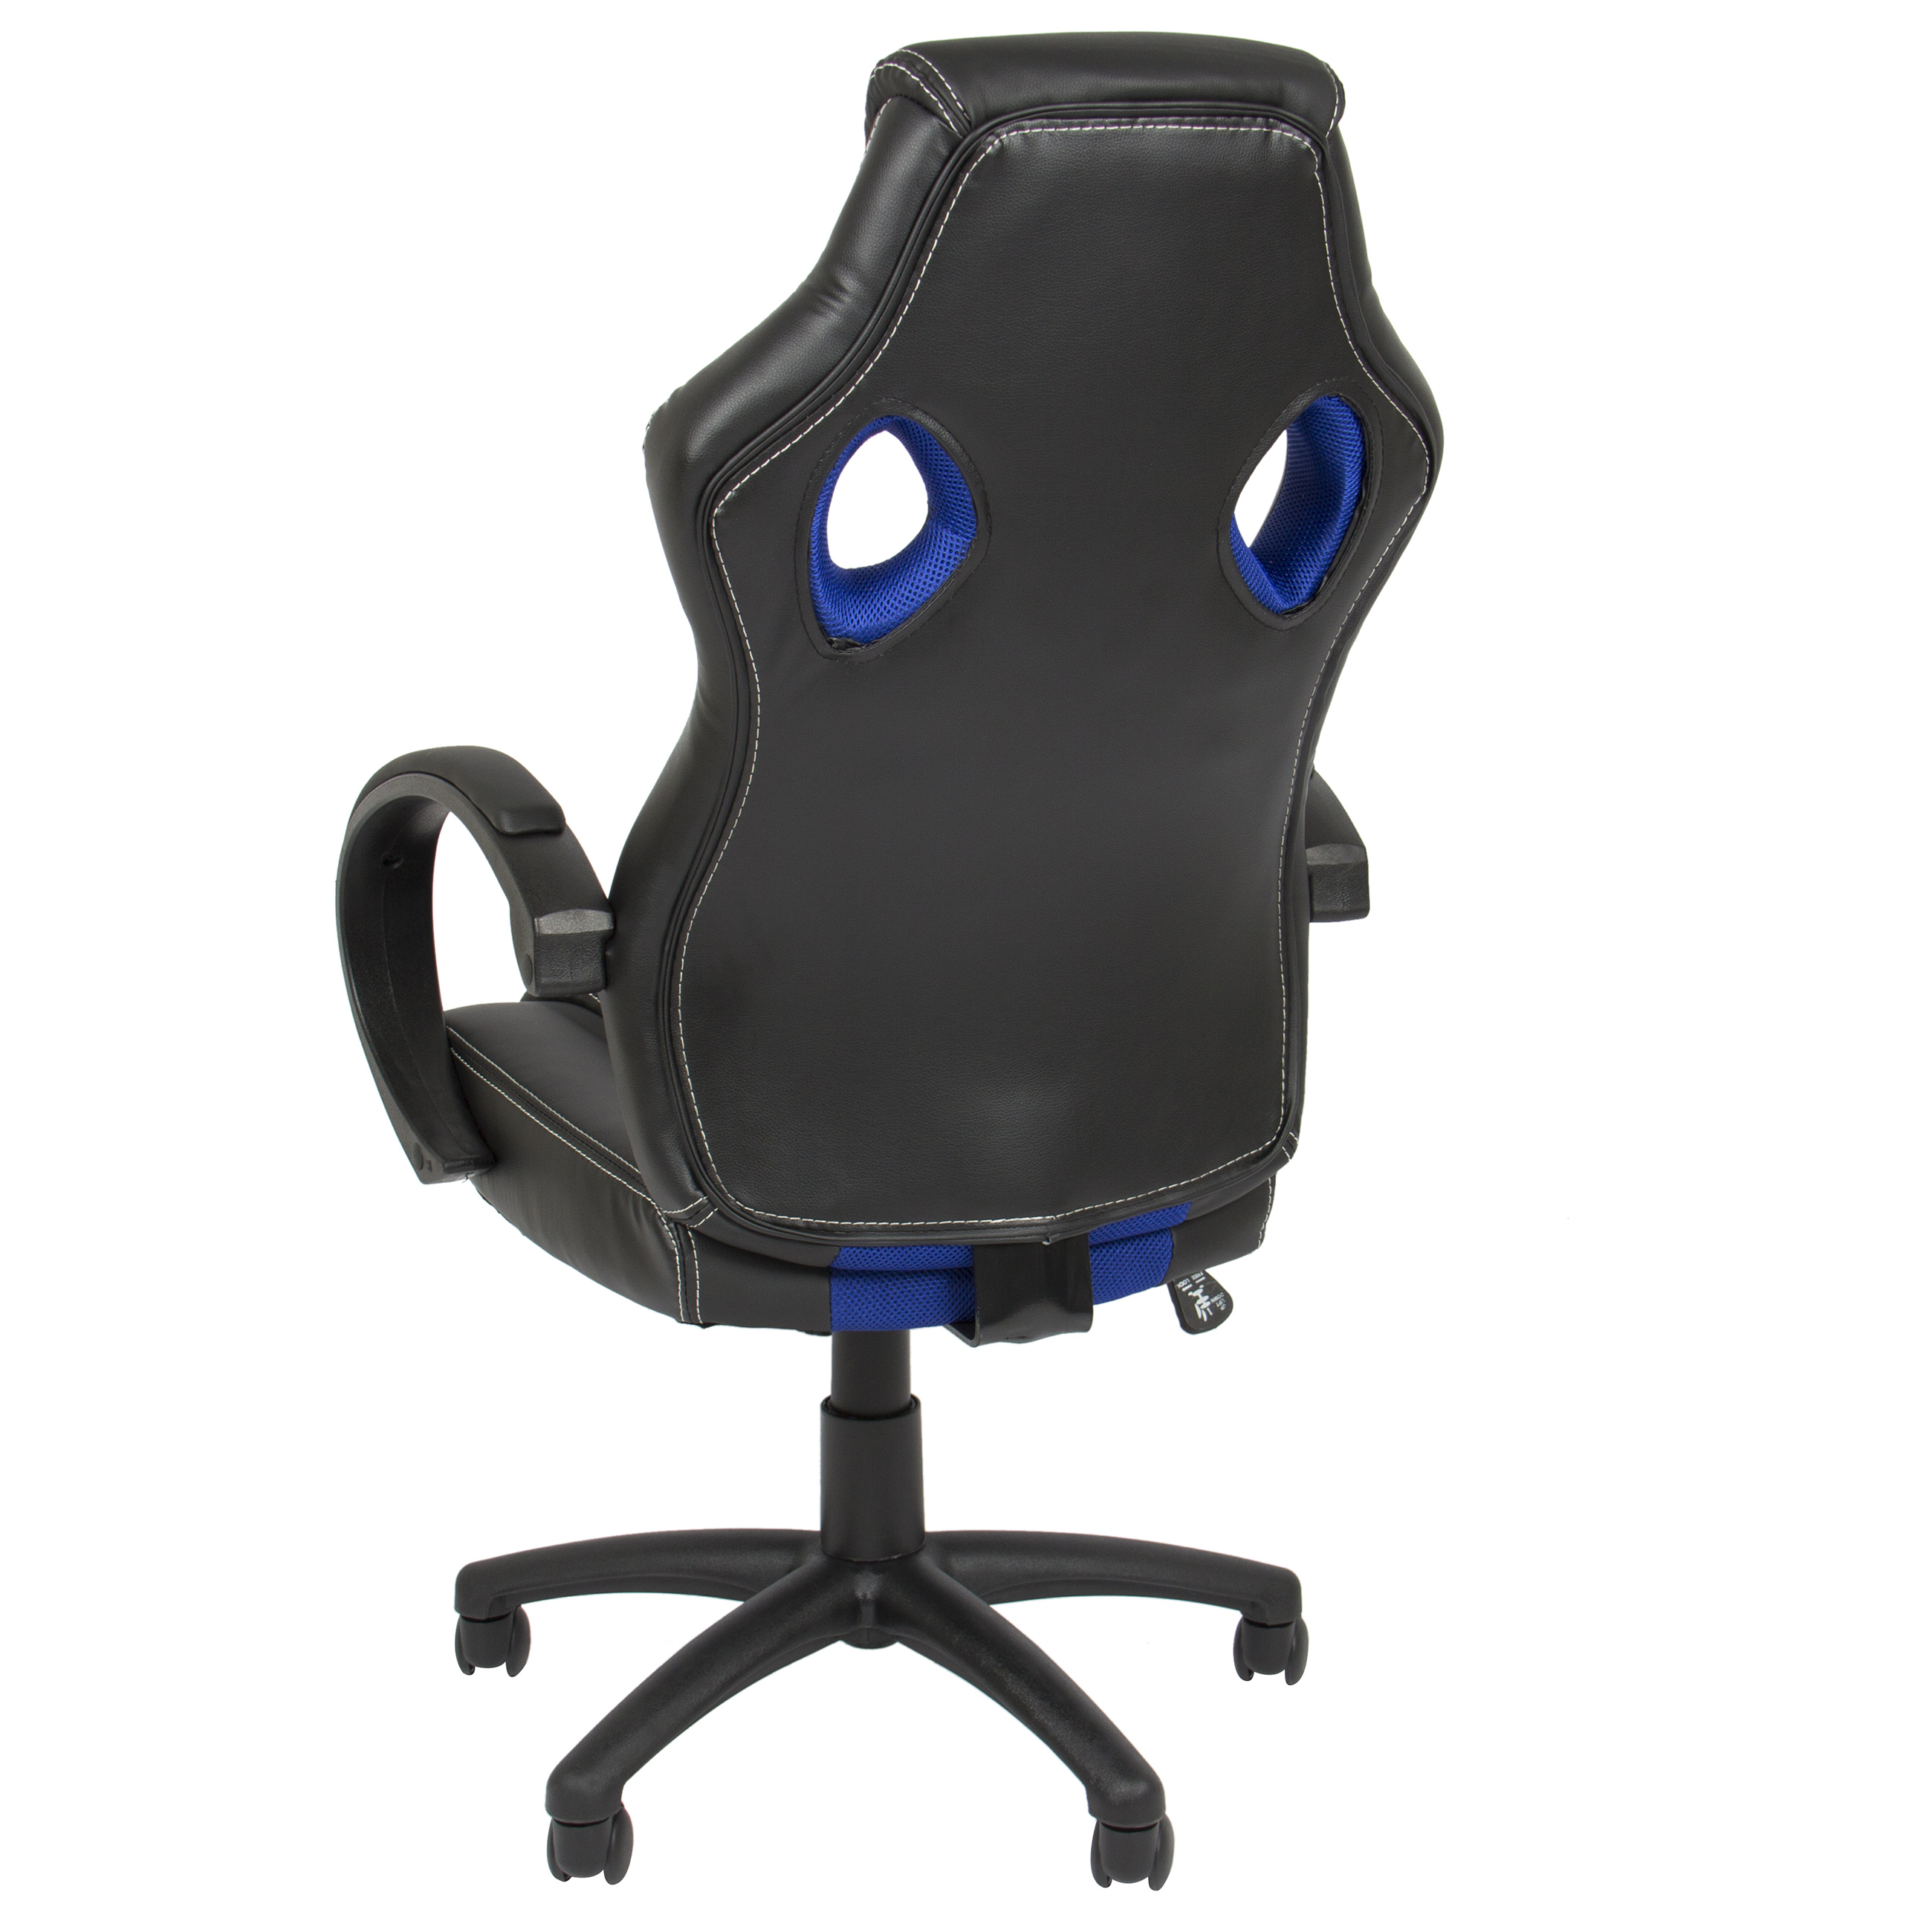 Executive Racing Office Chair Pu Leather Swivel Computer Desk Seat High Back Blue